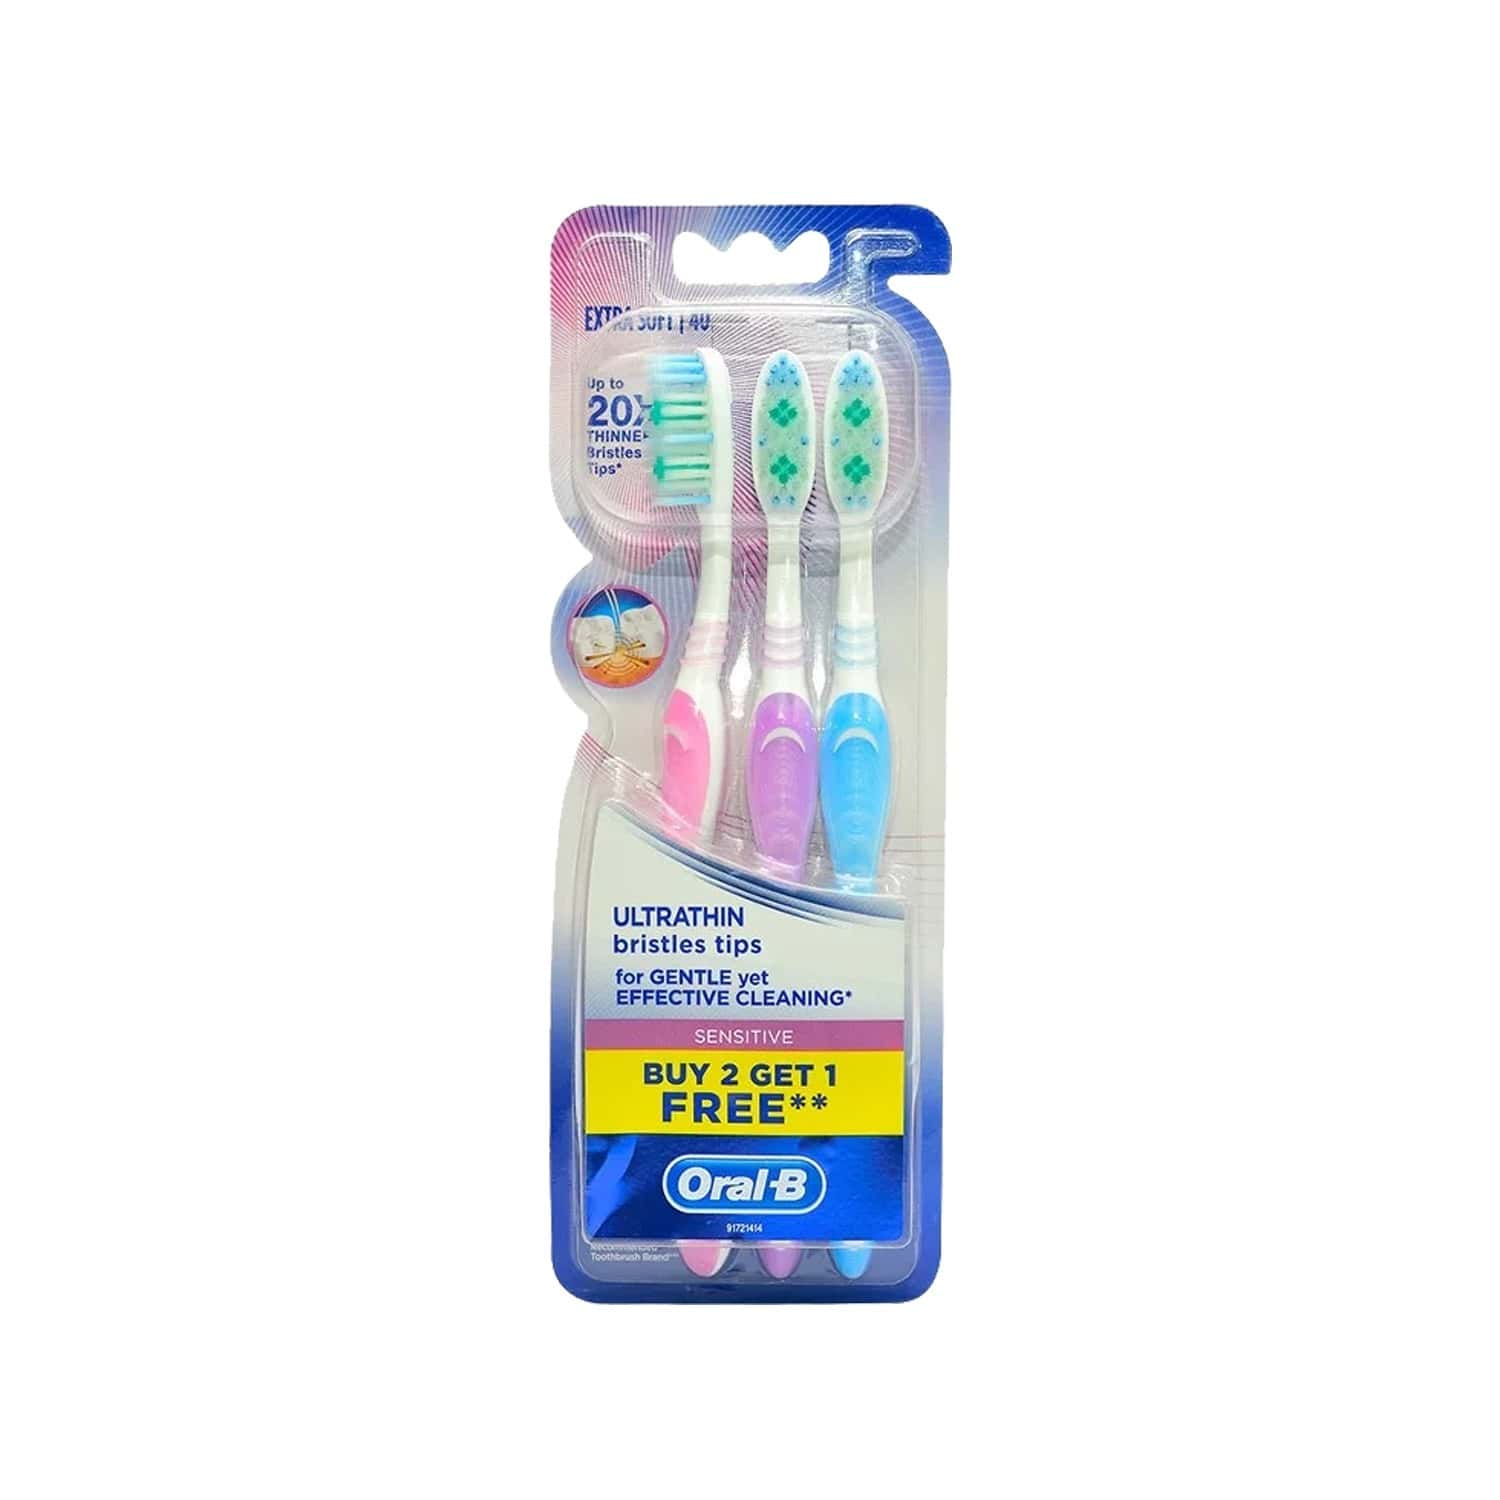 Oral-b Ultrathin Sensitive Toothbrush Buy 2 Get 1 Free